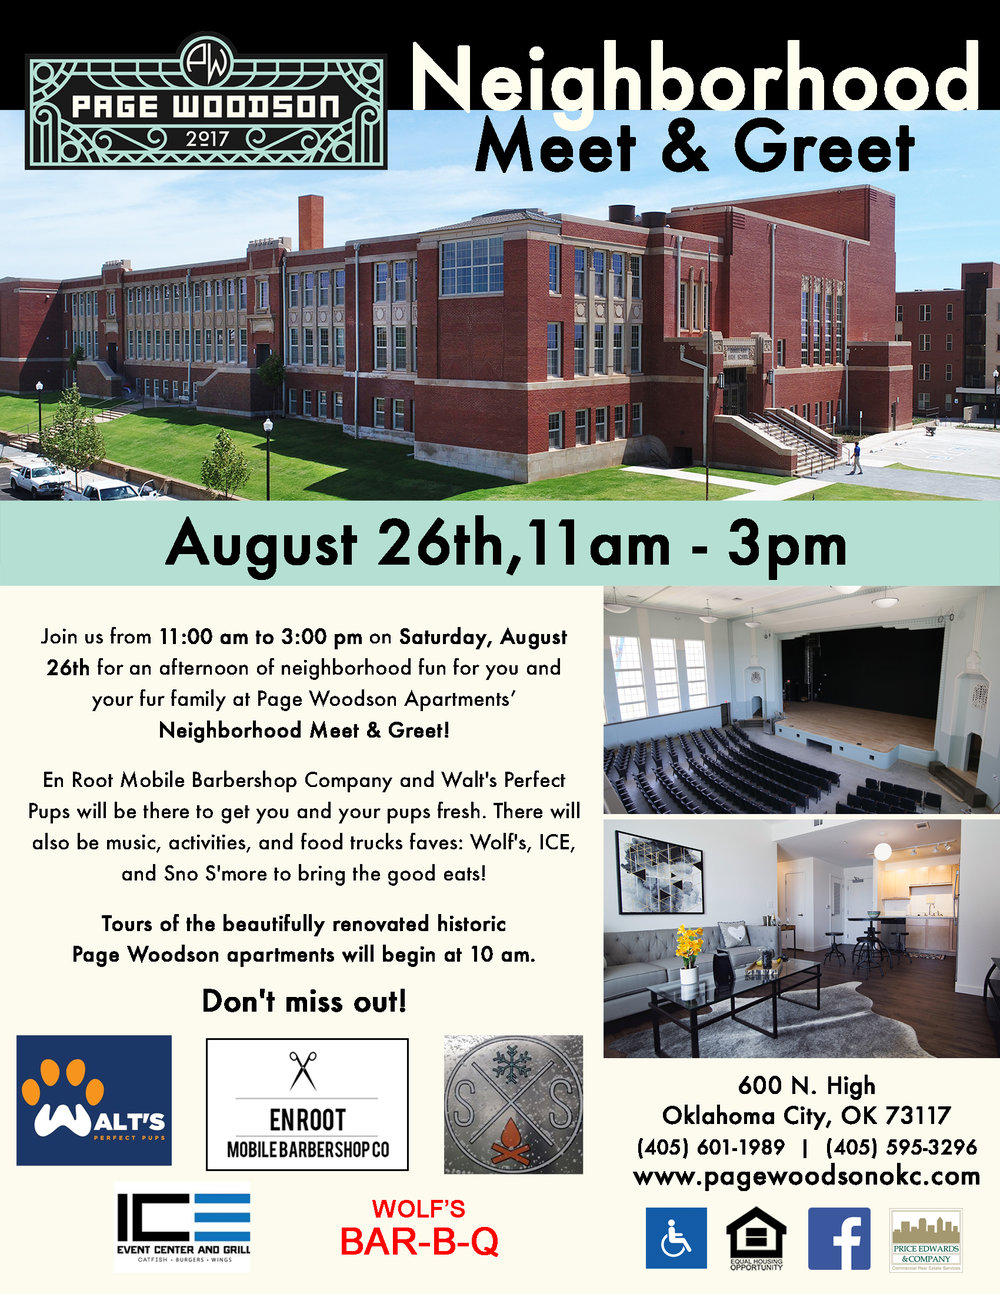 Neighborhood Meet & Greet - August 26th, 2017 -  11 am to 3 pmJoin us from 11:00 am to 3:00 pm on Saturday, August 26th for an afternoon of neighborhood fun for you and your fur family at Page Woodson Apartments' Neighborhood Meet & Greet! Tours of the beautifully renovated historic Page Woodson apartments will begin at 10 am.